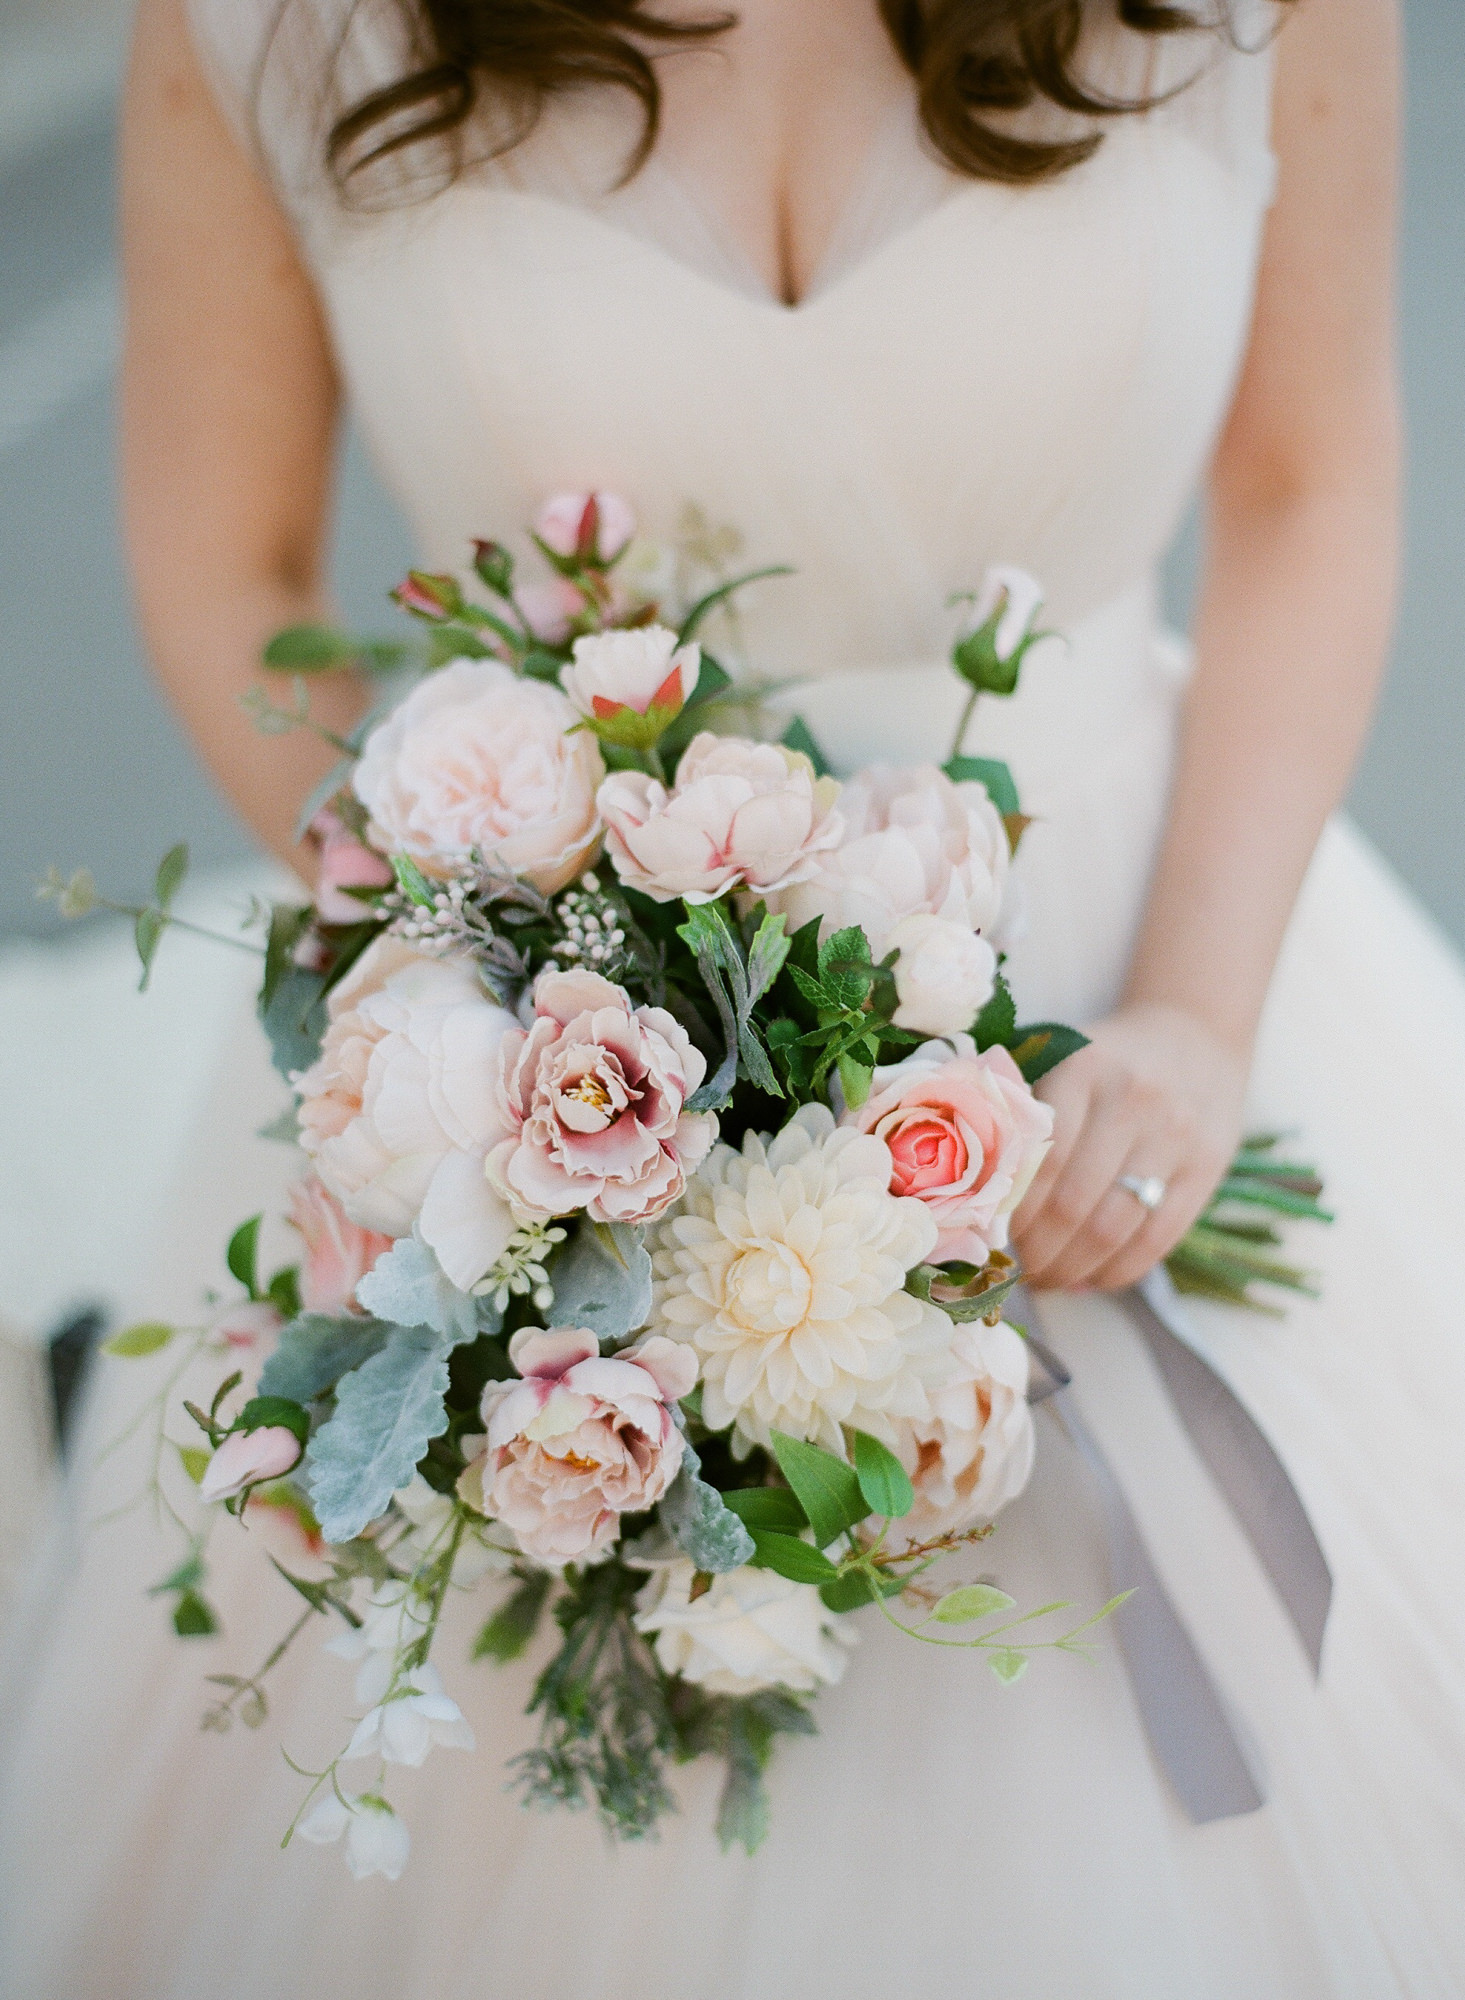 Large blush pink peony bouquet with roses and dahlias - Greg Finck Photography